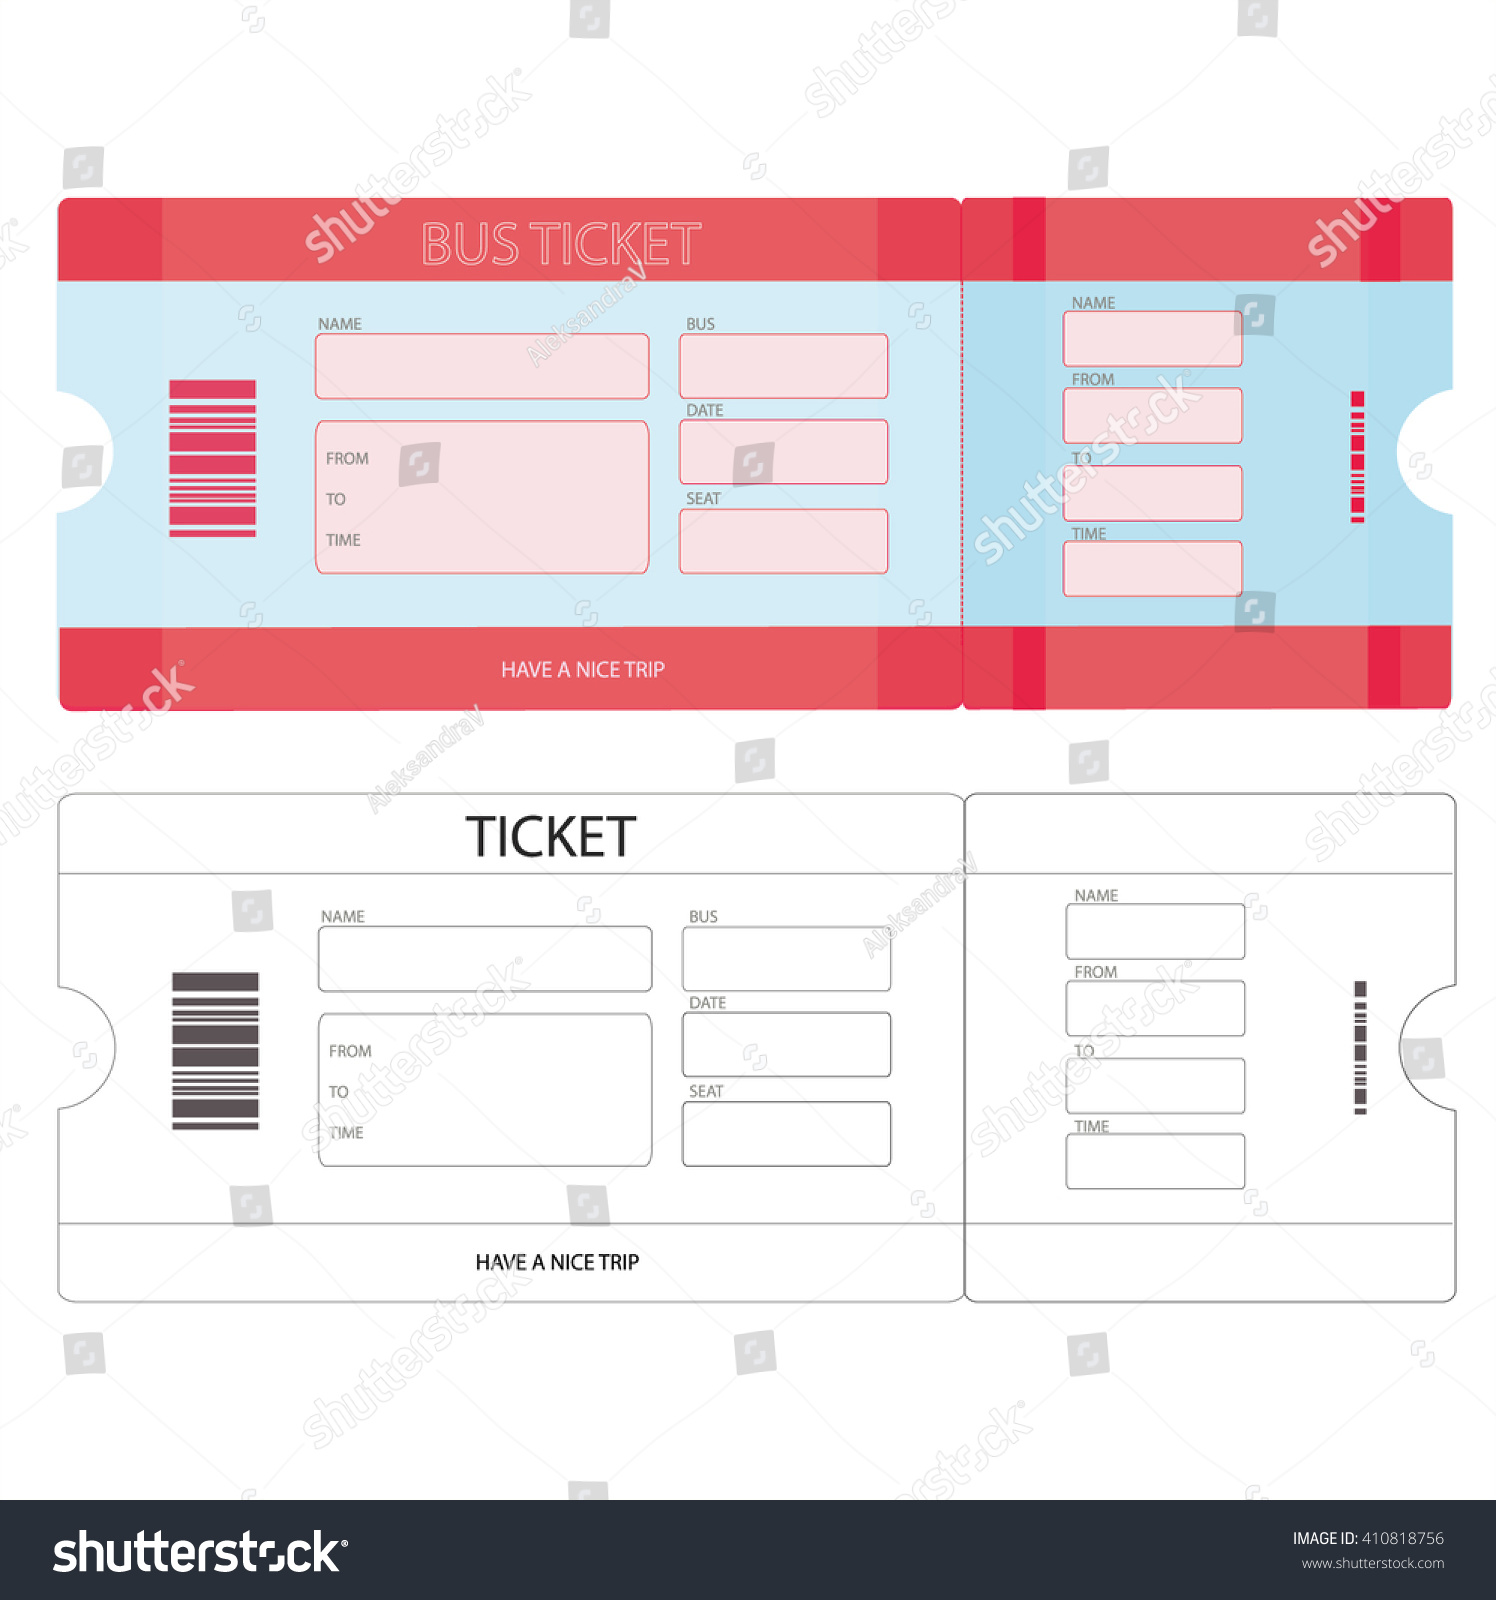 bus ticket template investor contract template free t